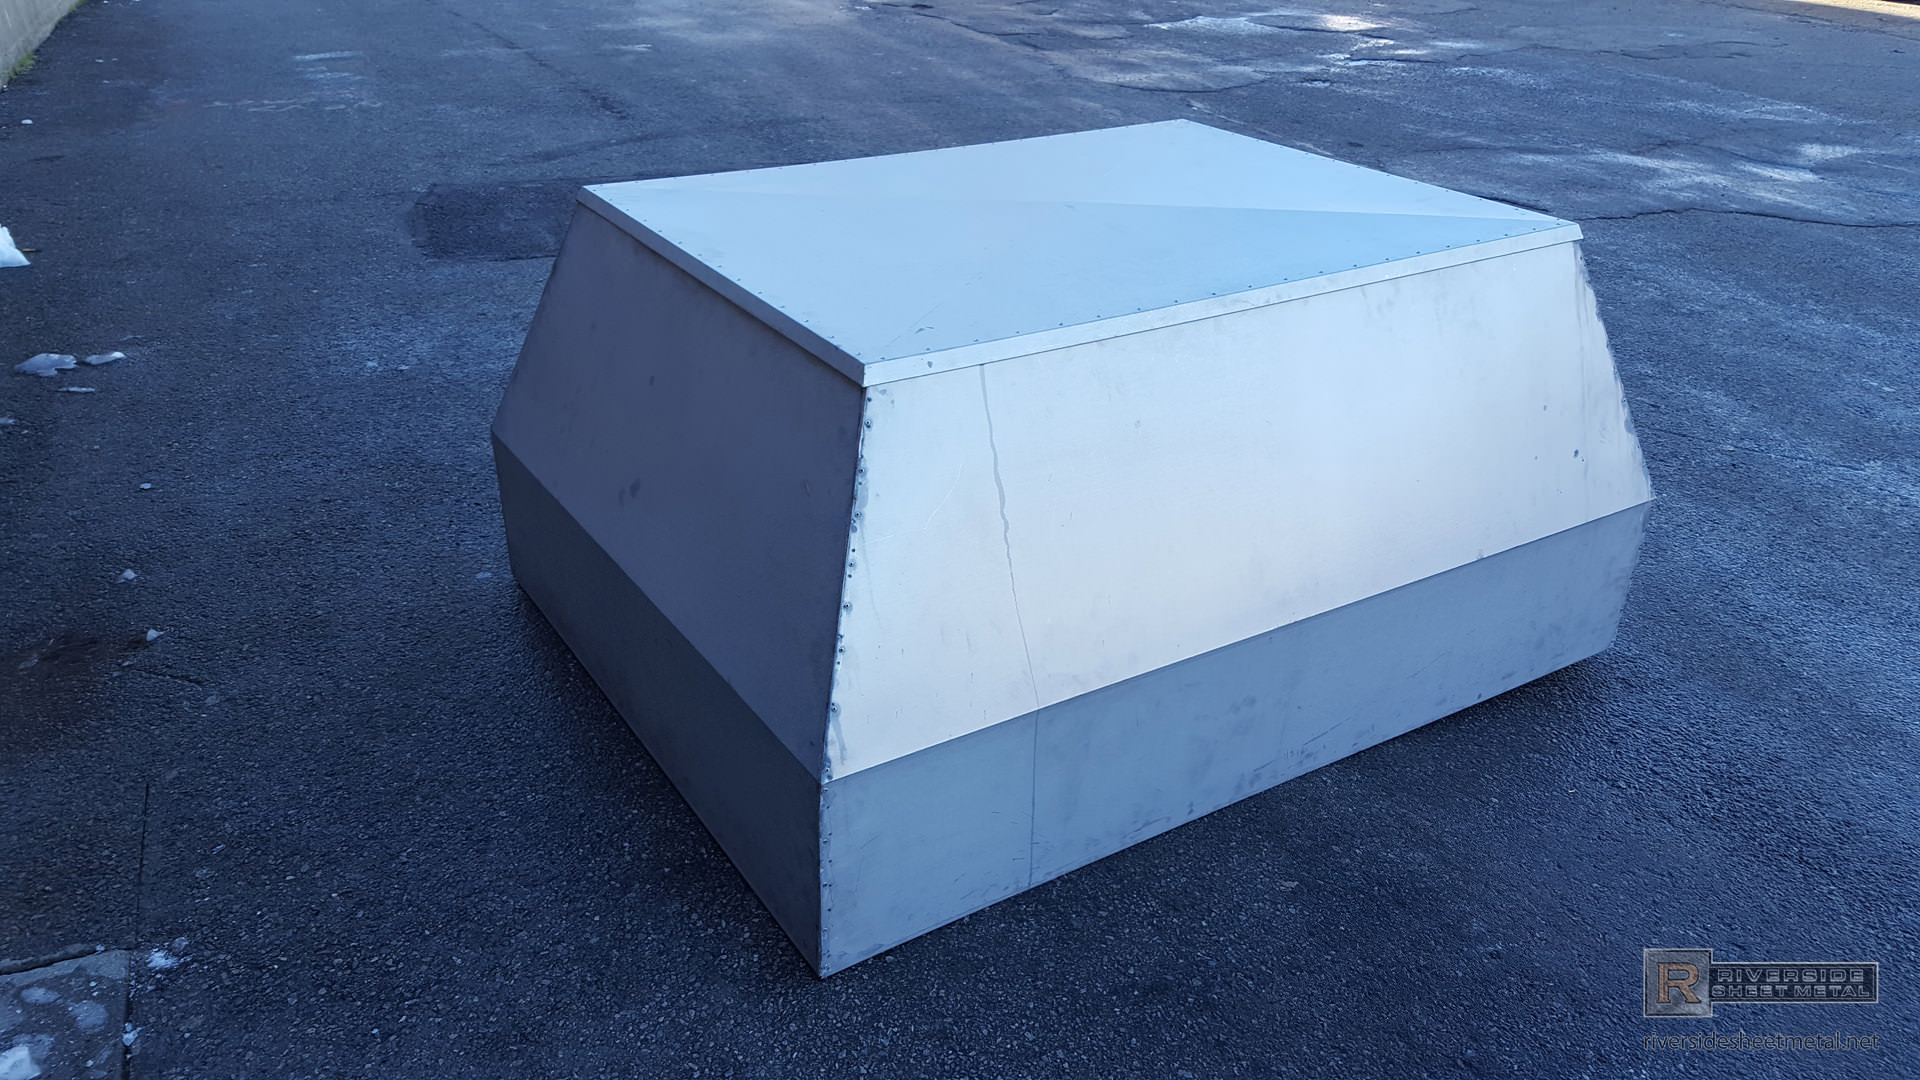 Non Venting Box Style Chimney Cap For Inactive Chimney